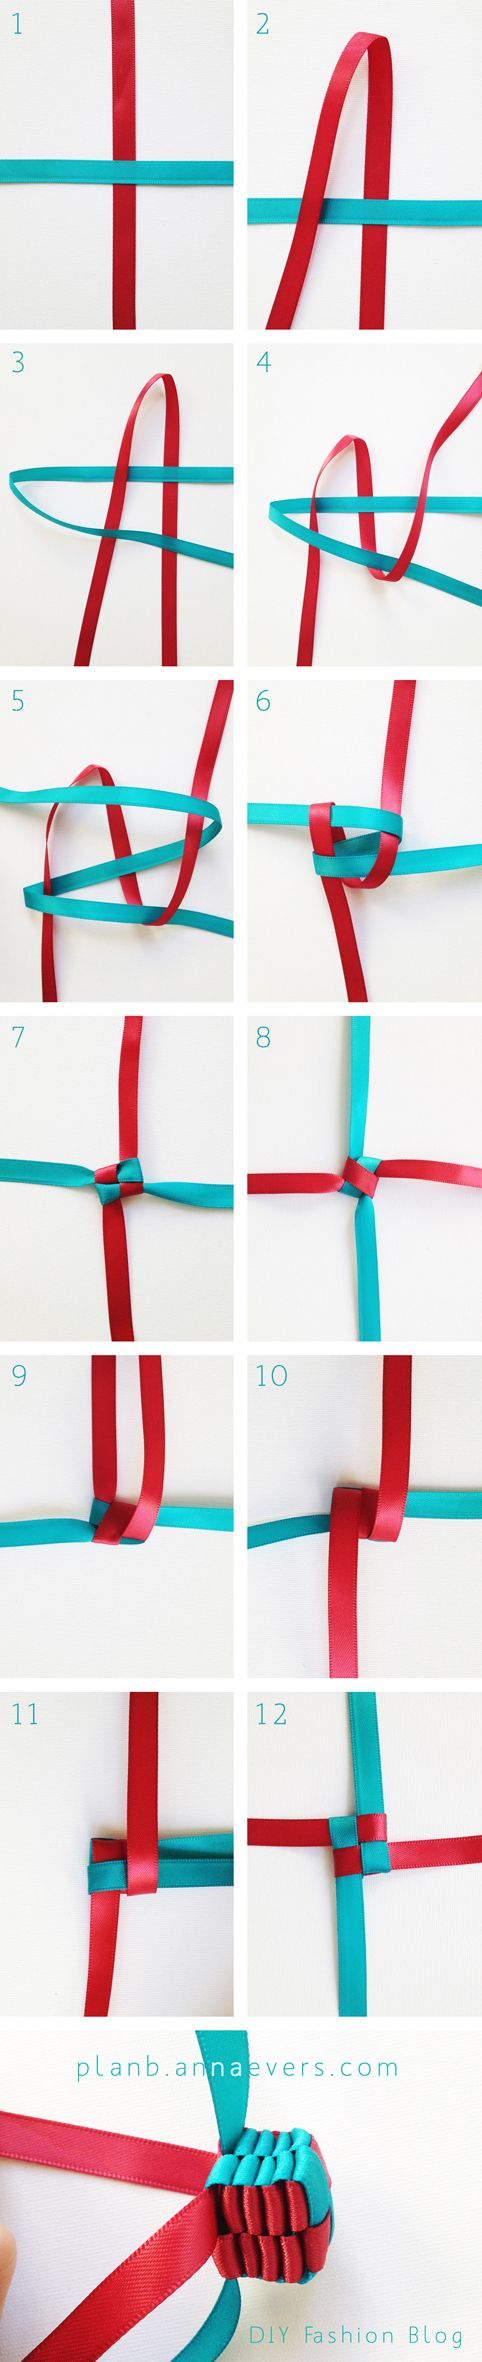 Diy Cube Braid I Never N Knew How To Start It Fun Crafts Ribbon Crafts Cute Crafts